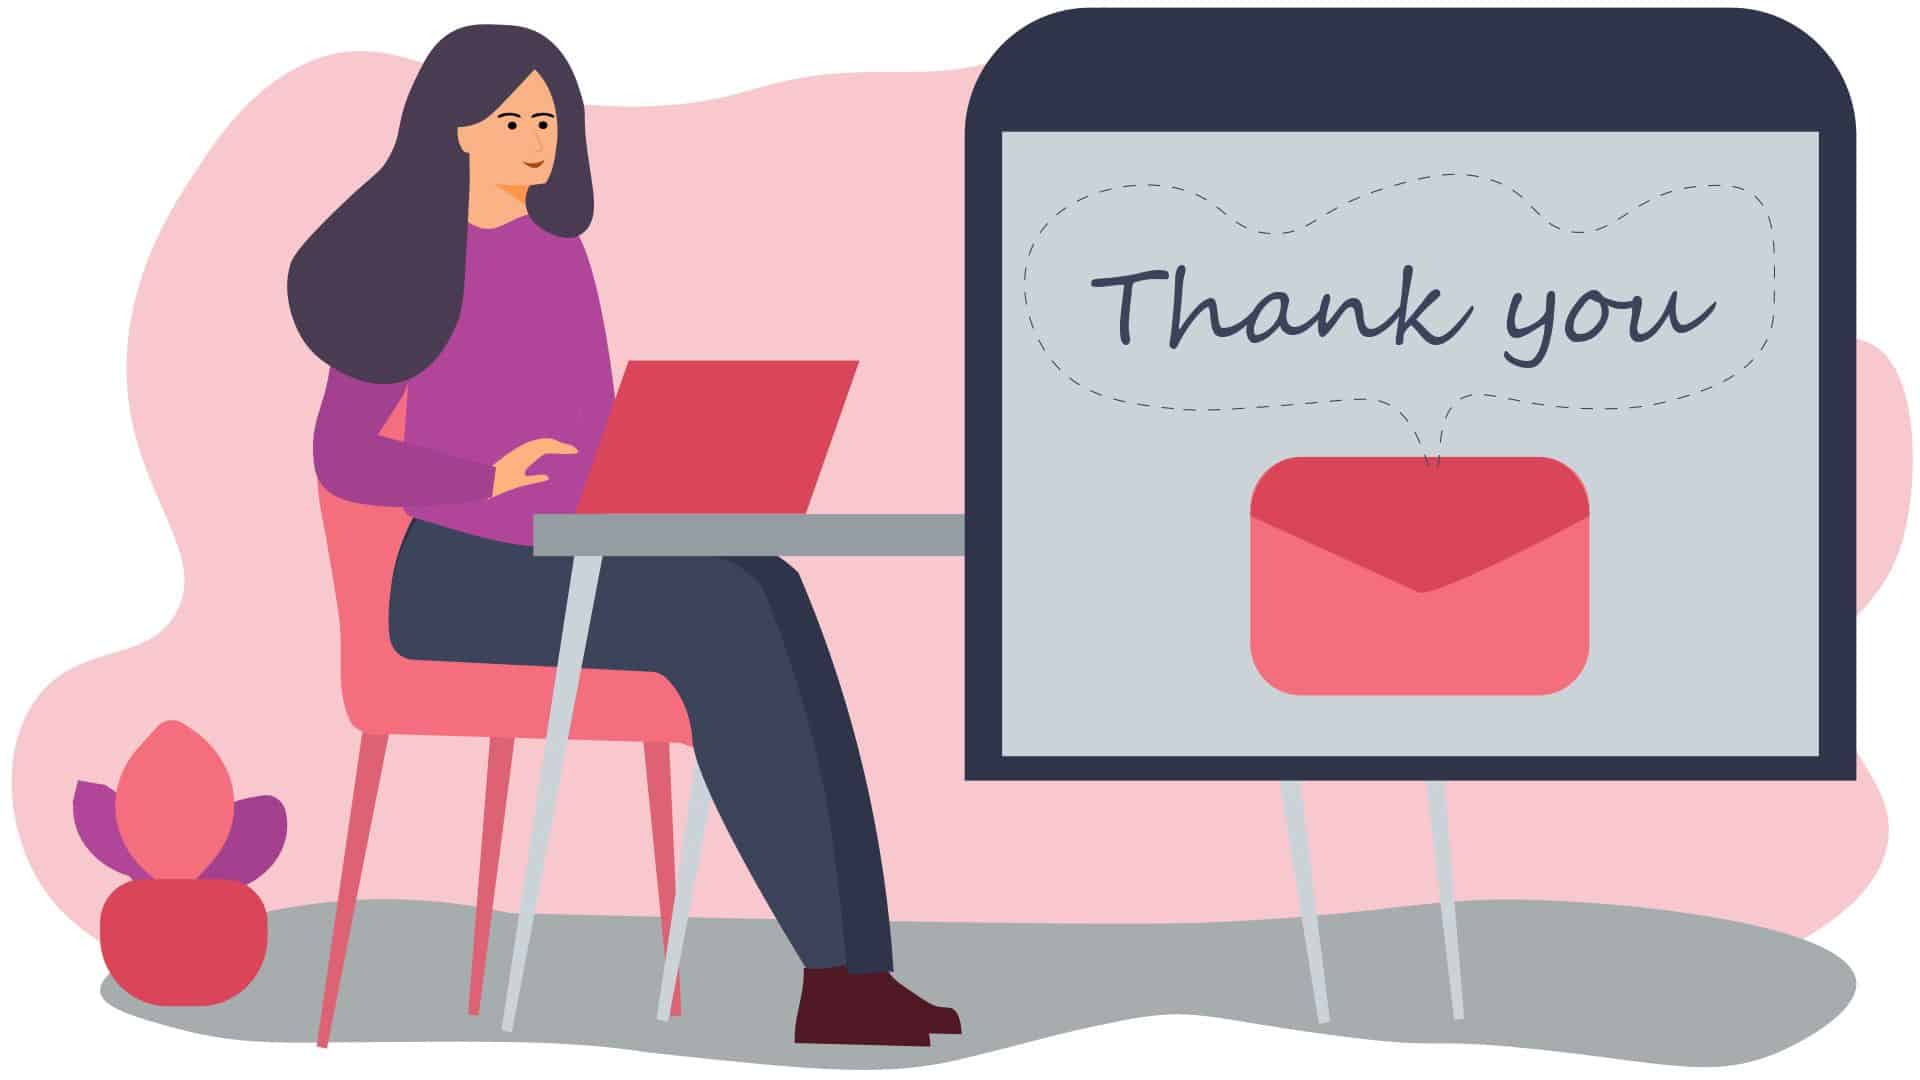 Thank You Email After an Interview: 15 Amazing Tips (with Samples) ʕ•́ᴥ•̀ʔっ♡